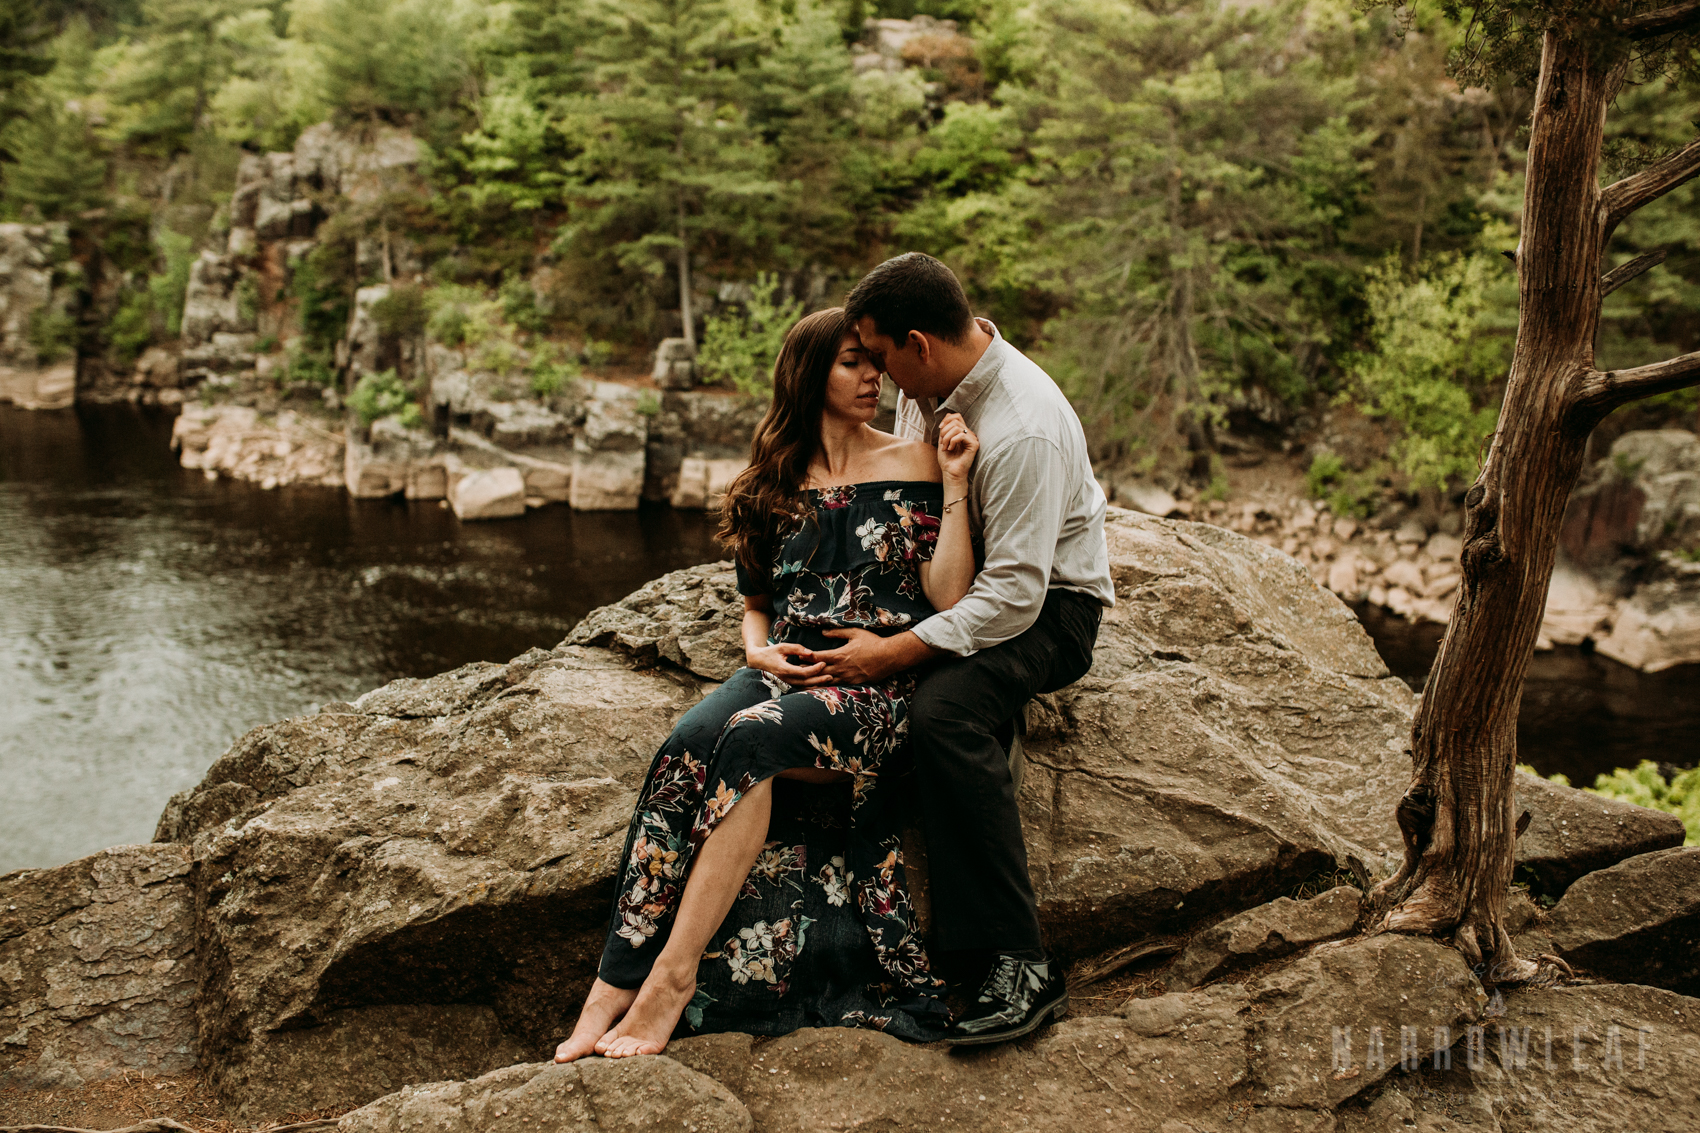 summer-hiking-engagement-photos-saint-croix-falls-wisconsin-moody-wedding-photography-1466.jpg